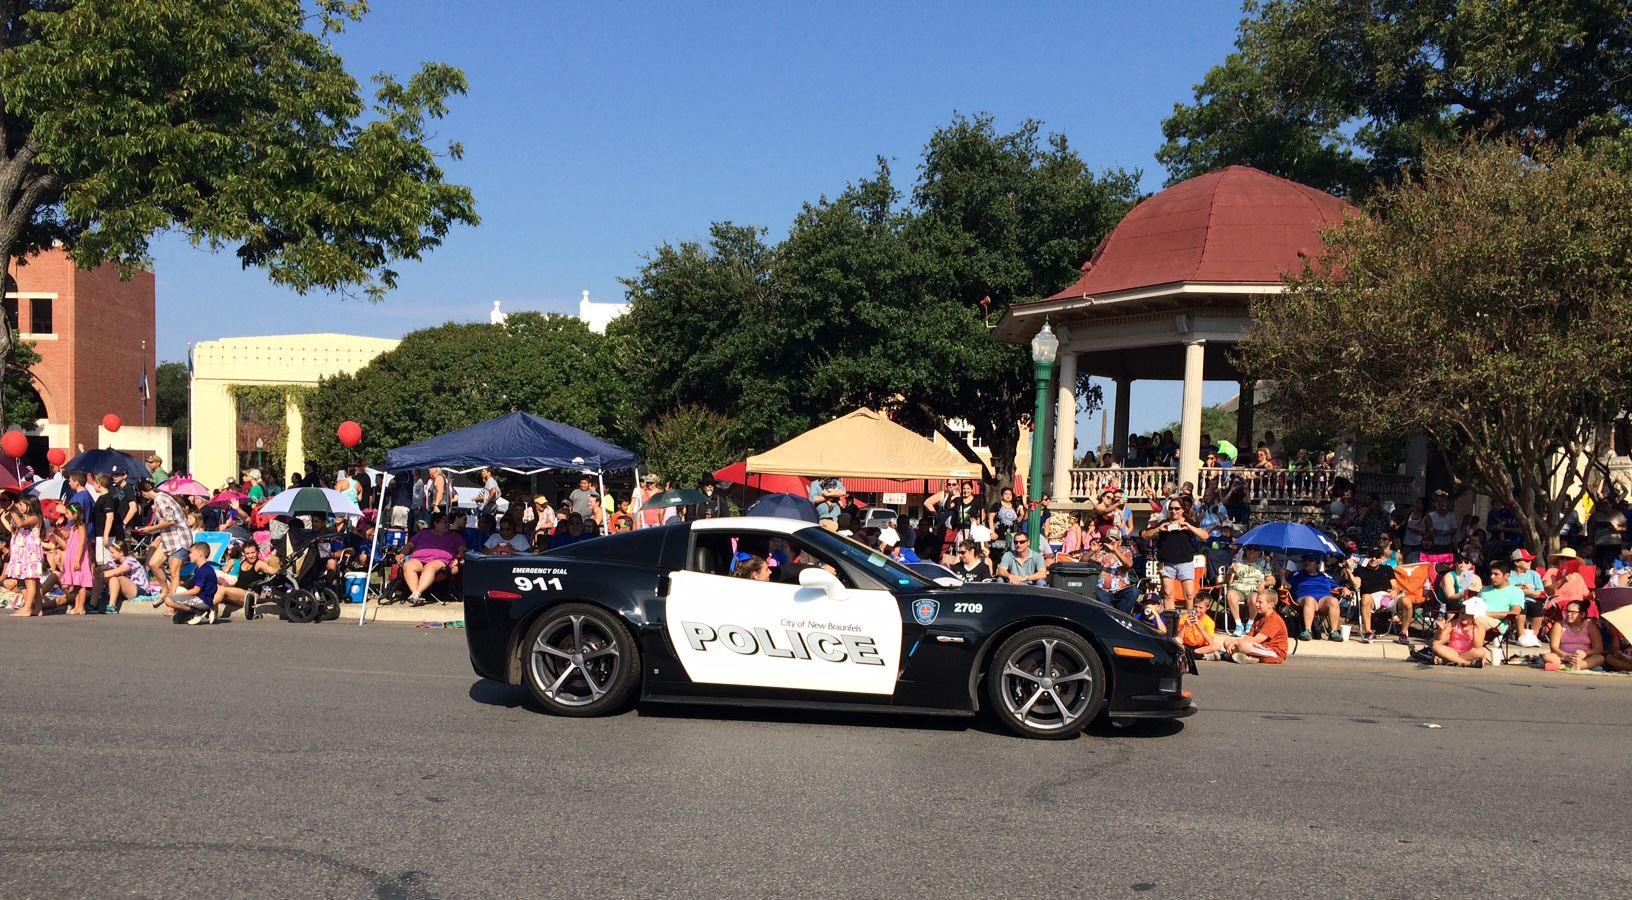 Fast Facts About the NBPD Corvette | New Braunfels, TX